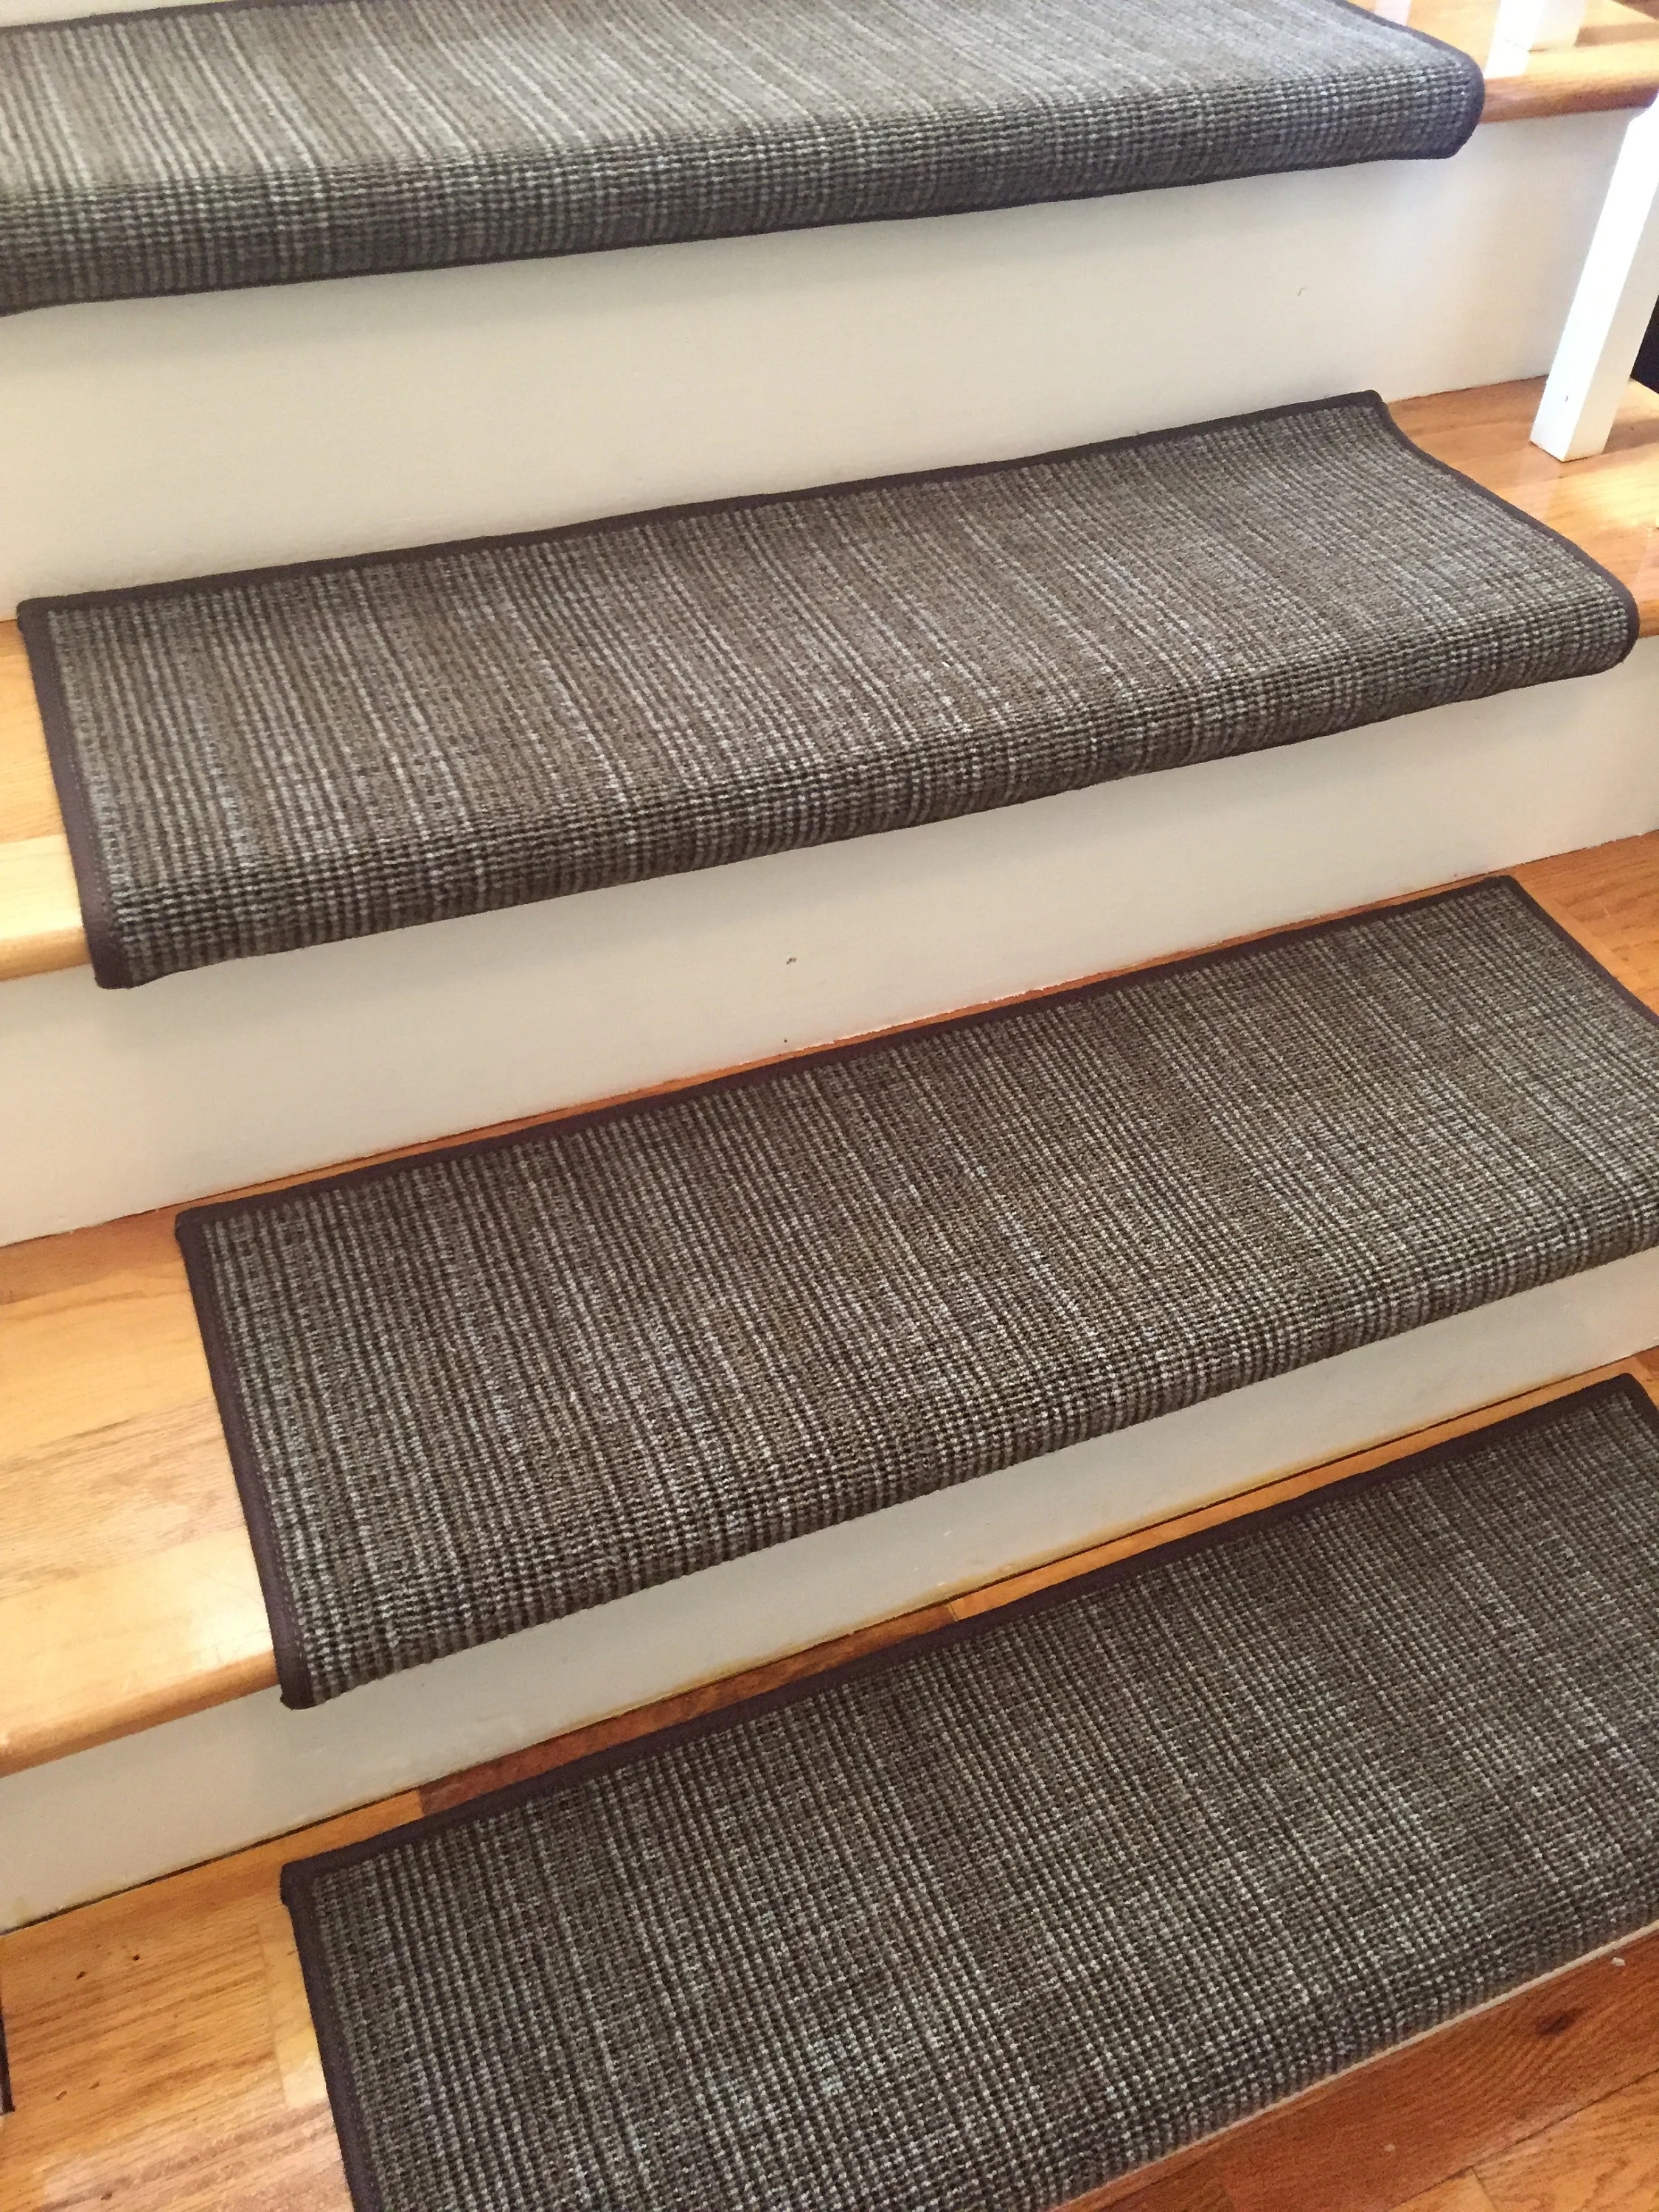 Traverse Earth And Other Colors True Bullnose™ Padded Carpet | Padded Carpet Stair Treads | Stair Risers | Adhesive Padding | Bullnose Padded | Staircase Makeover | Flooring